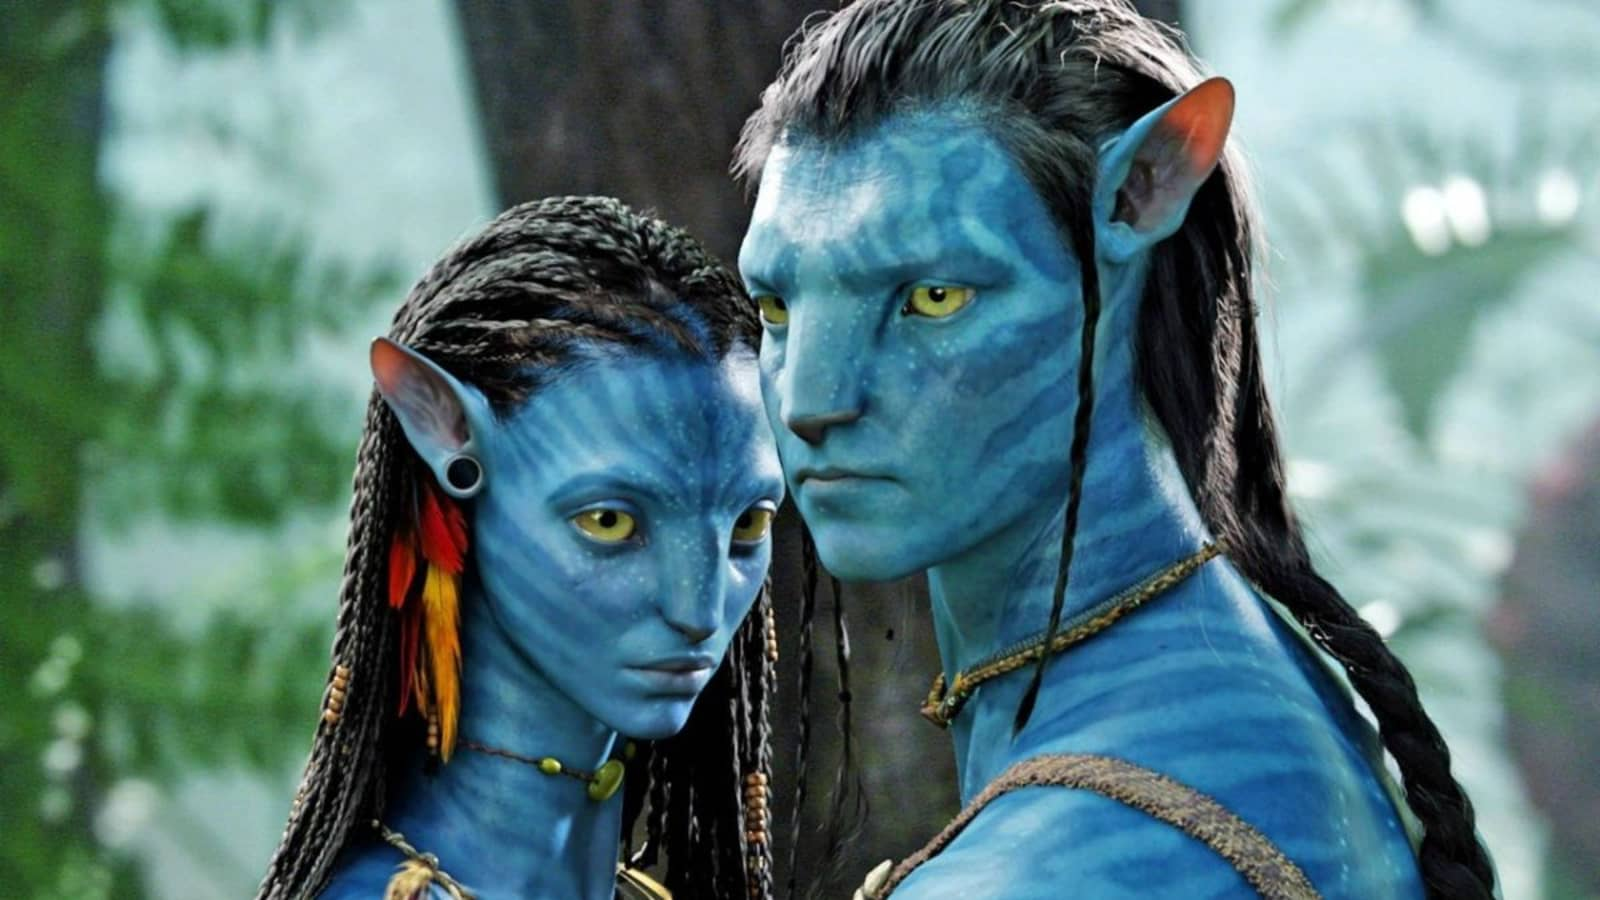 James Cameron's 'Avatar' sequels are a huge risk for Disney